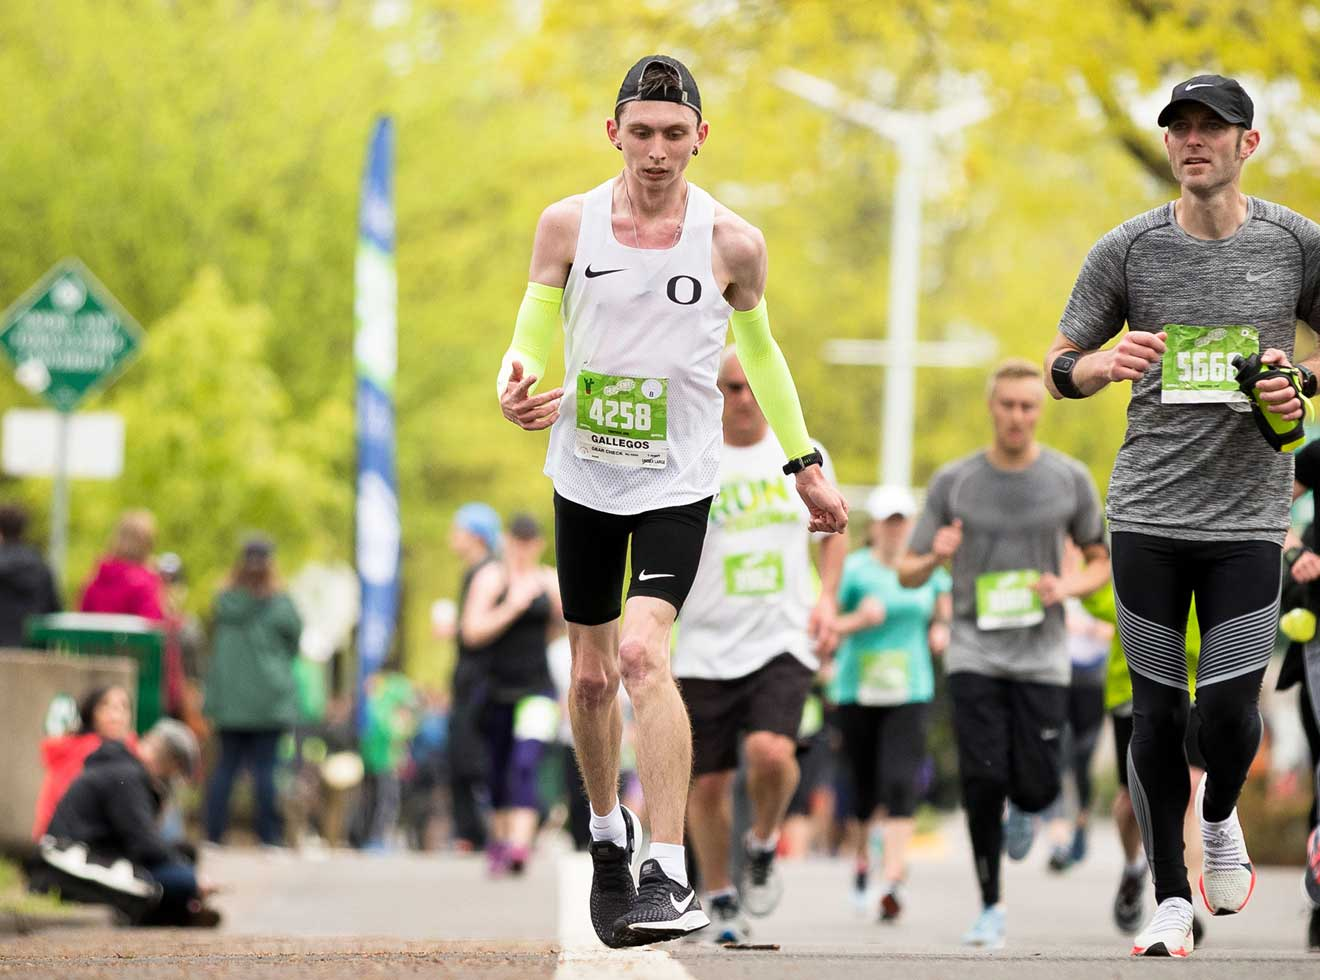 Justin Gallegos running half-marathon on Eugene, OR